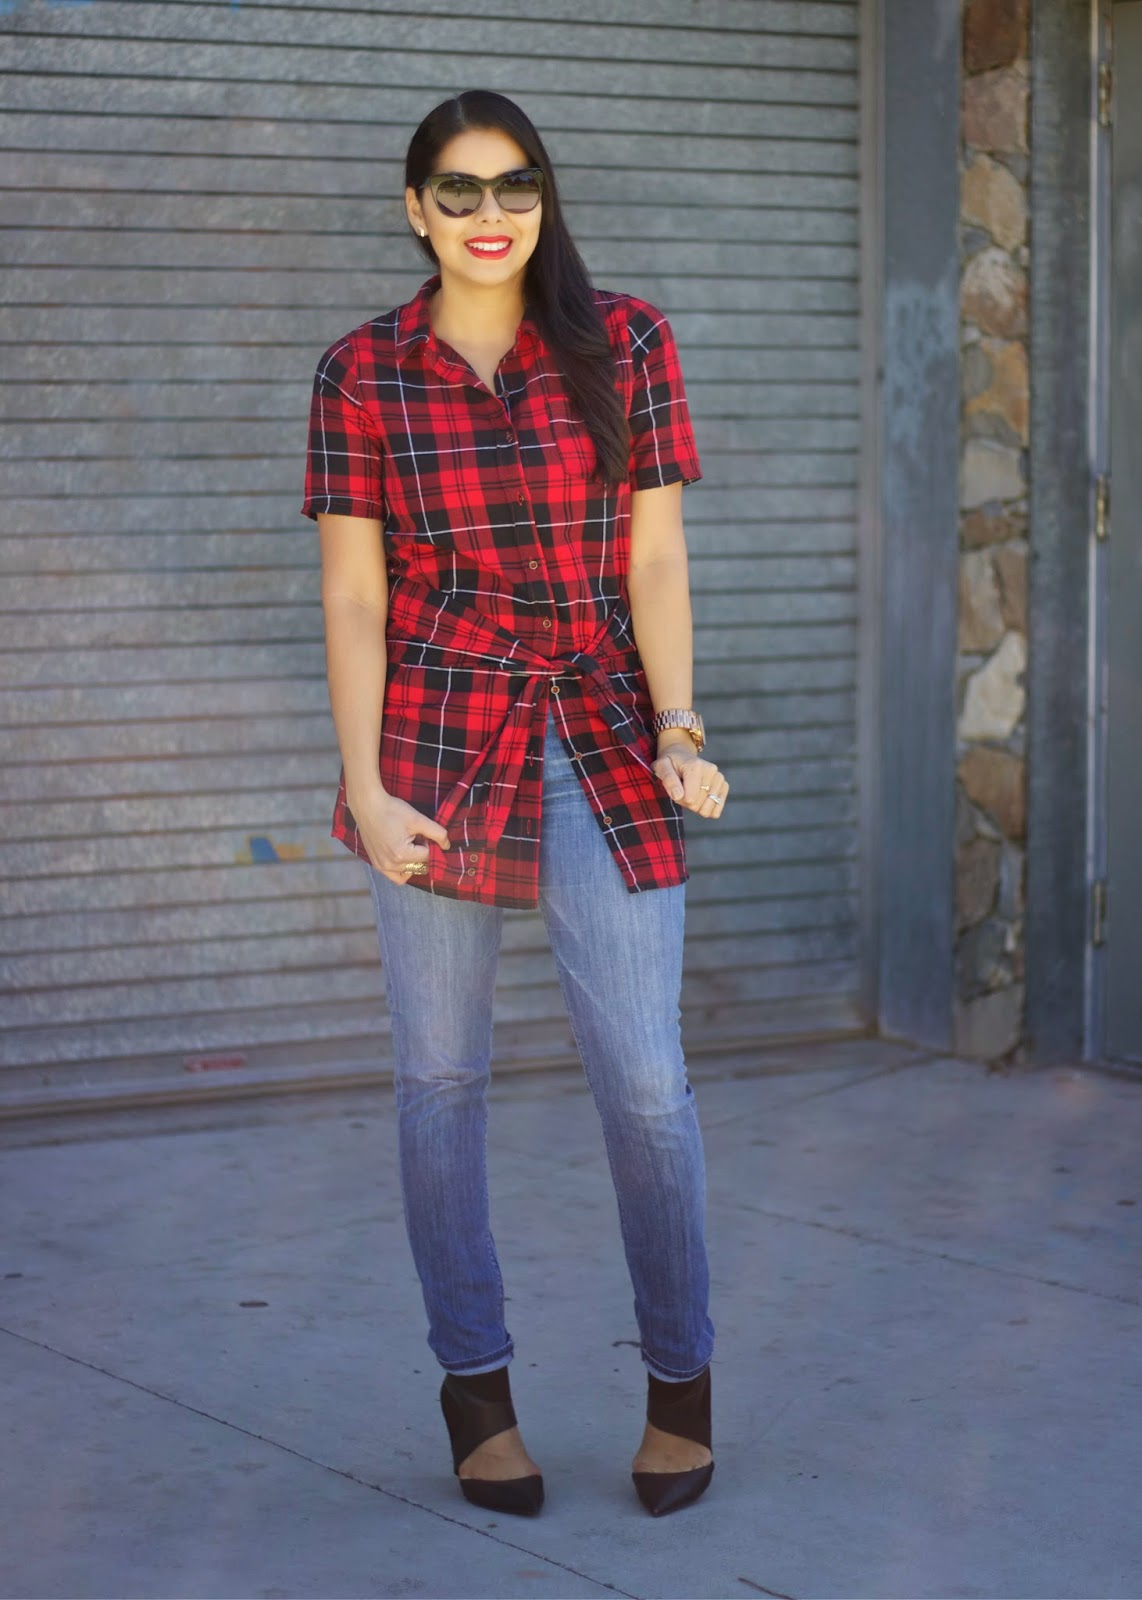 how to wear plaid with jeans, how to wear tartan with jeans, how to wear red lips, how to wear buffalo check with jeans